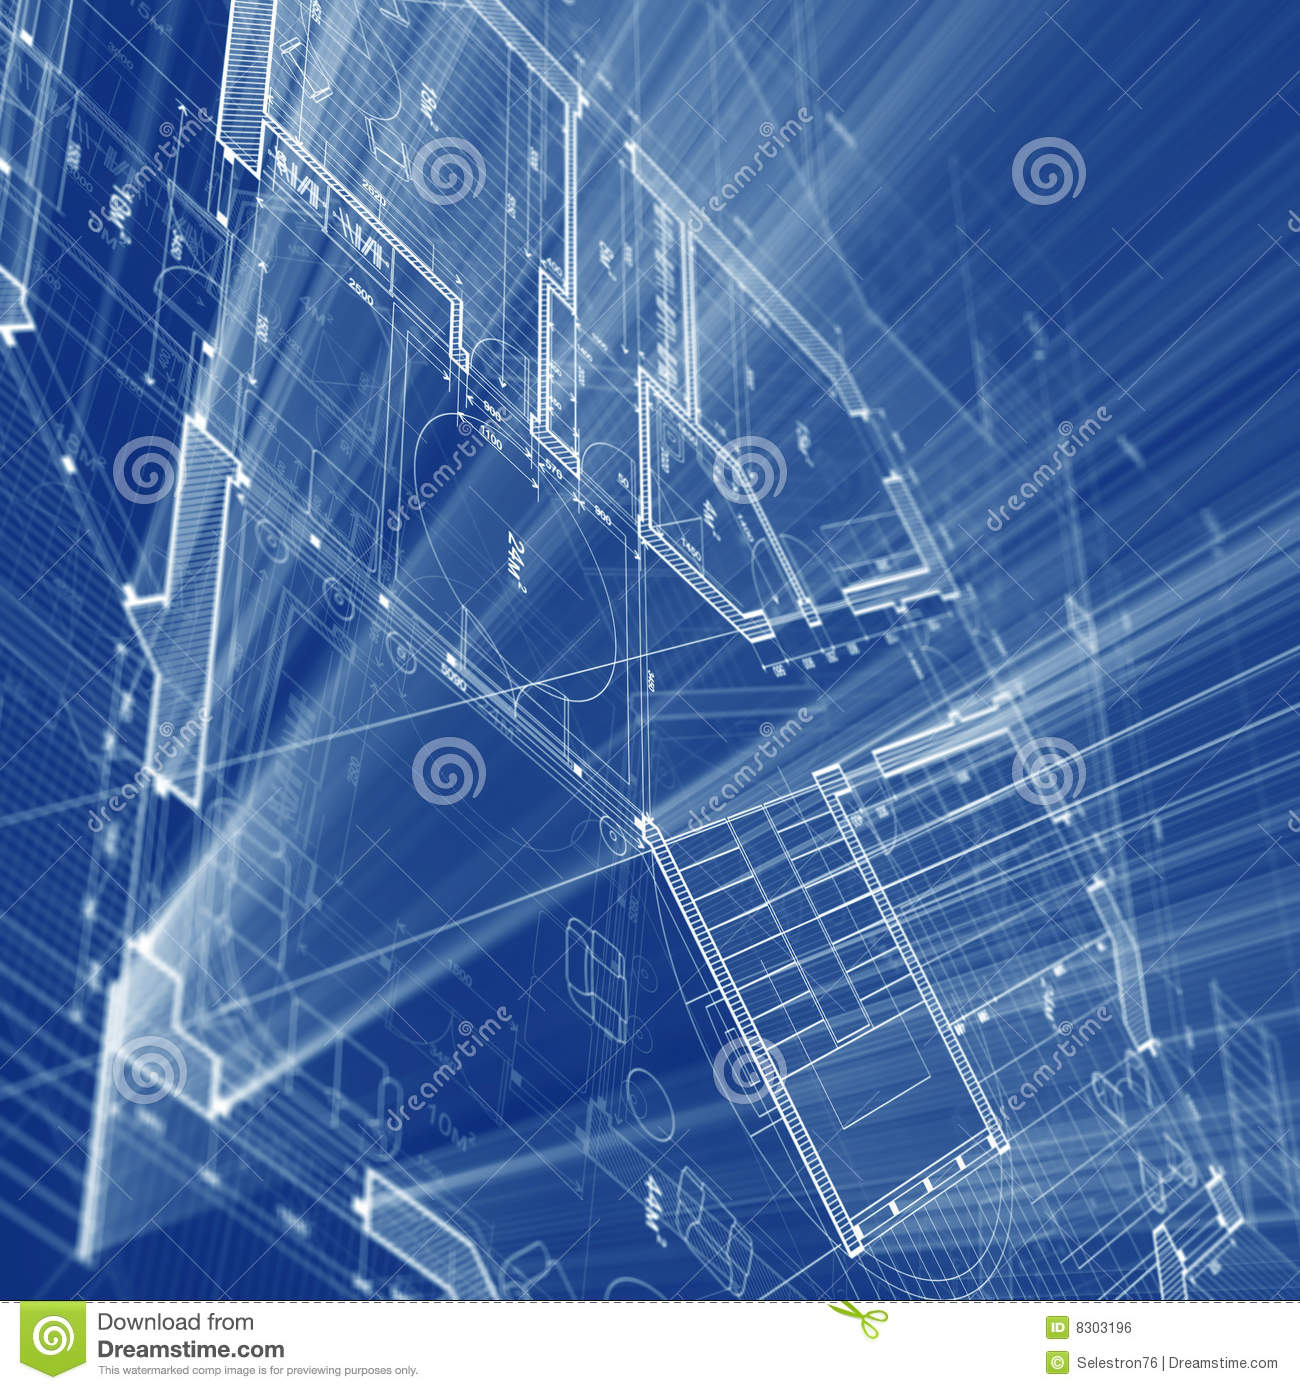 Architecture blueprint stock illustration image of for Architecture design blueprint